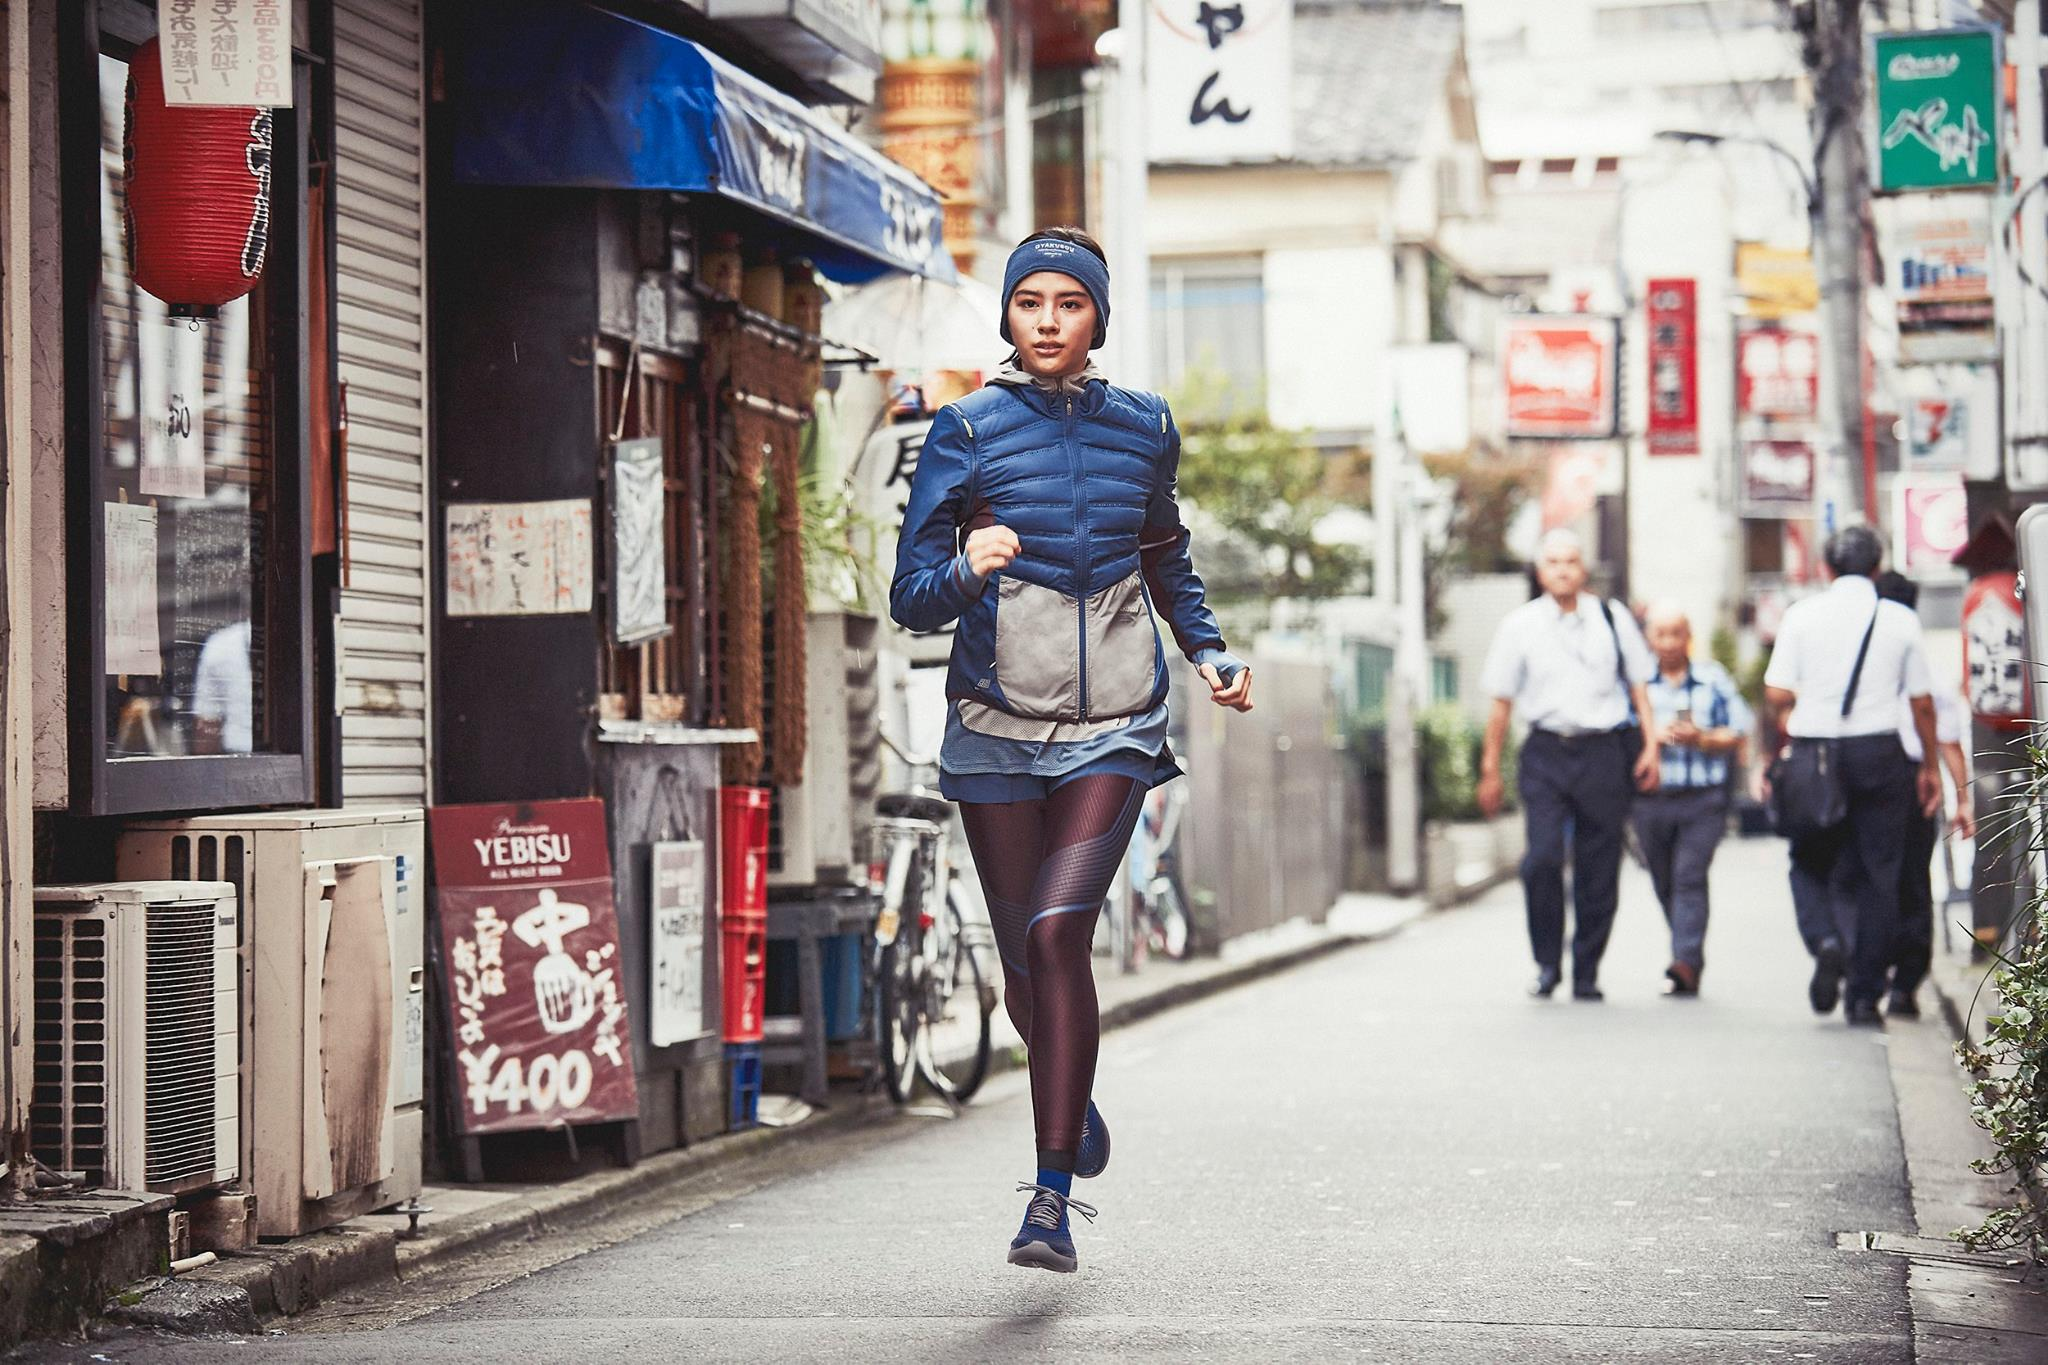 undercover-nike-gyakusou-holiday-2016-collection-release-20161110